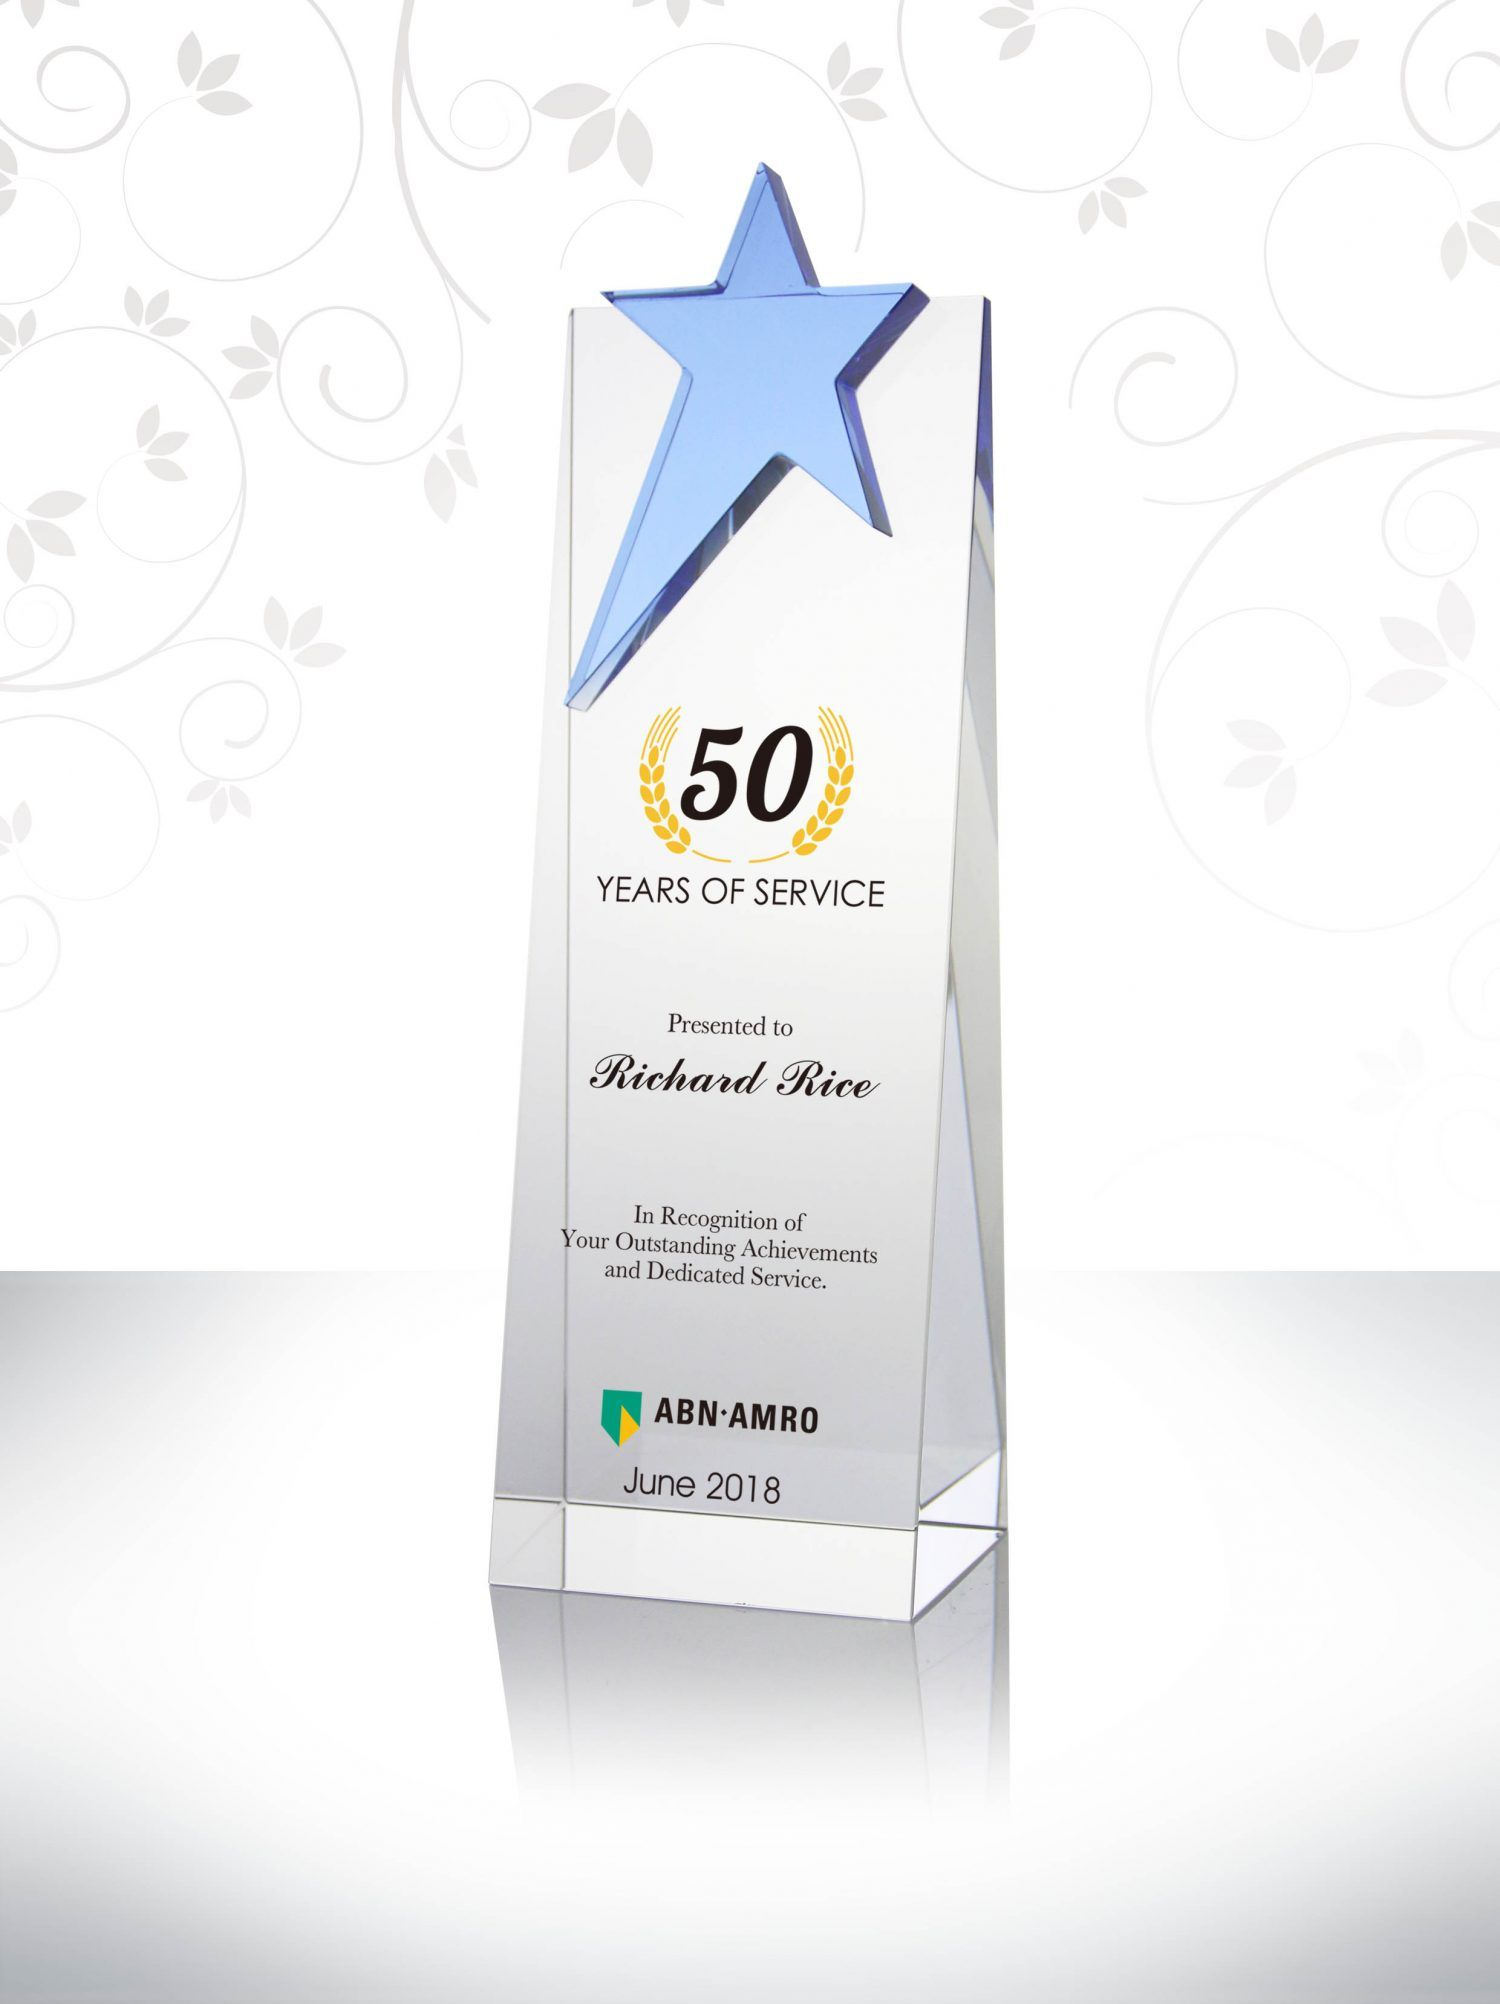 This 50 Years Anniversary Service Gift is one of our most